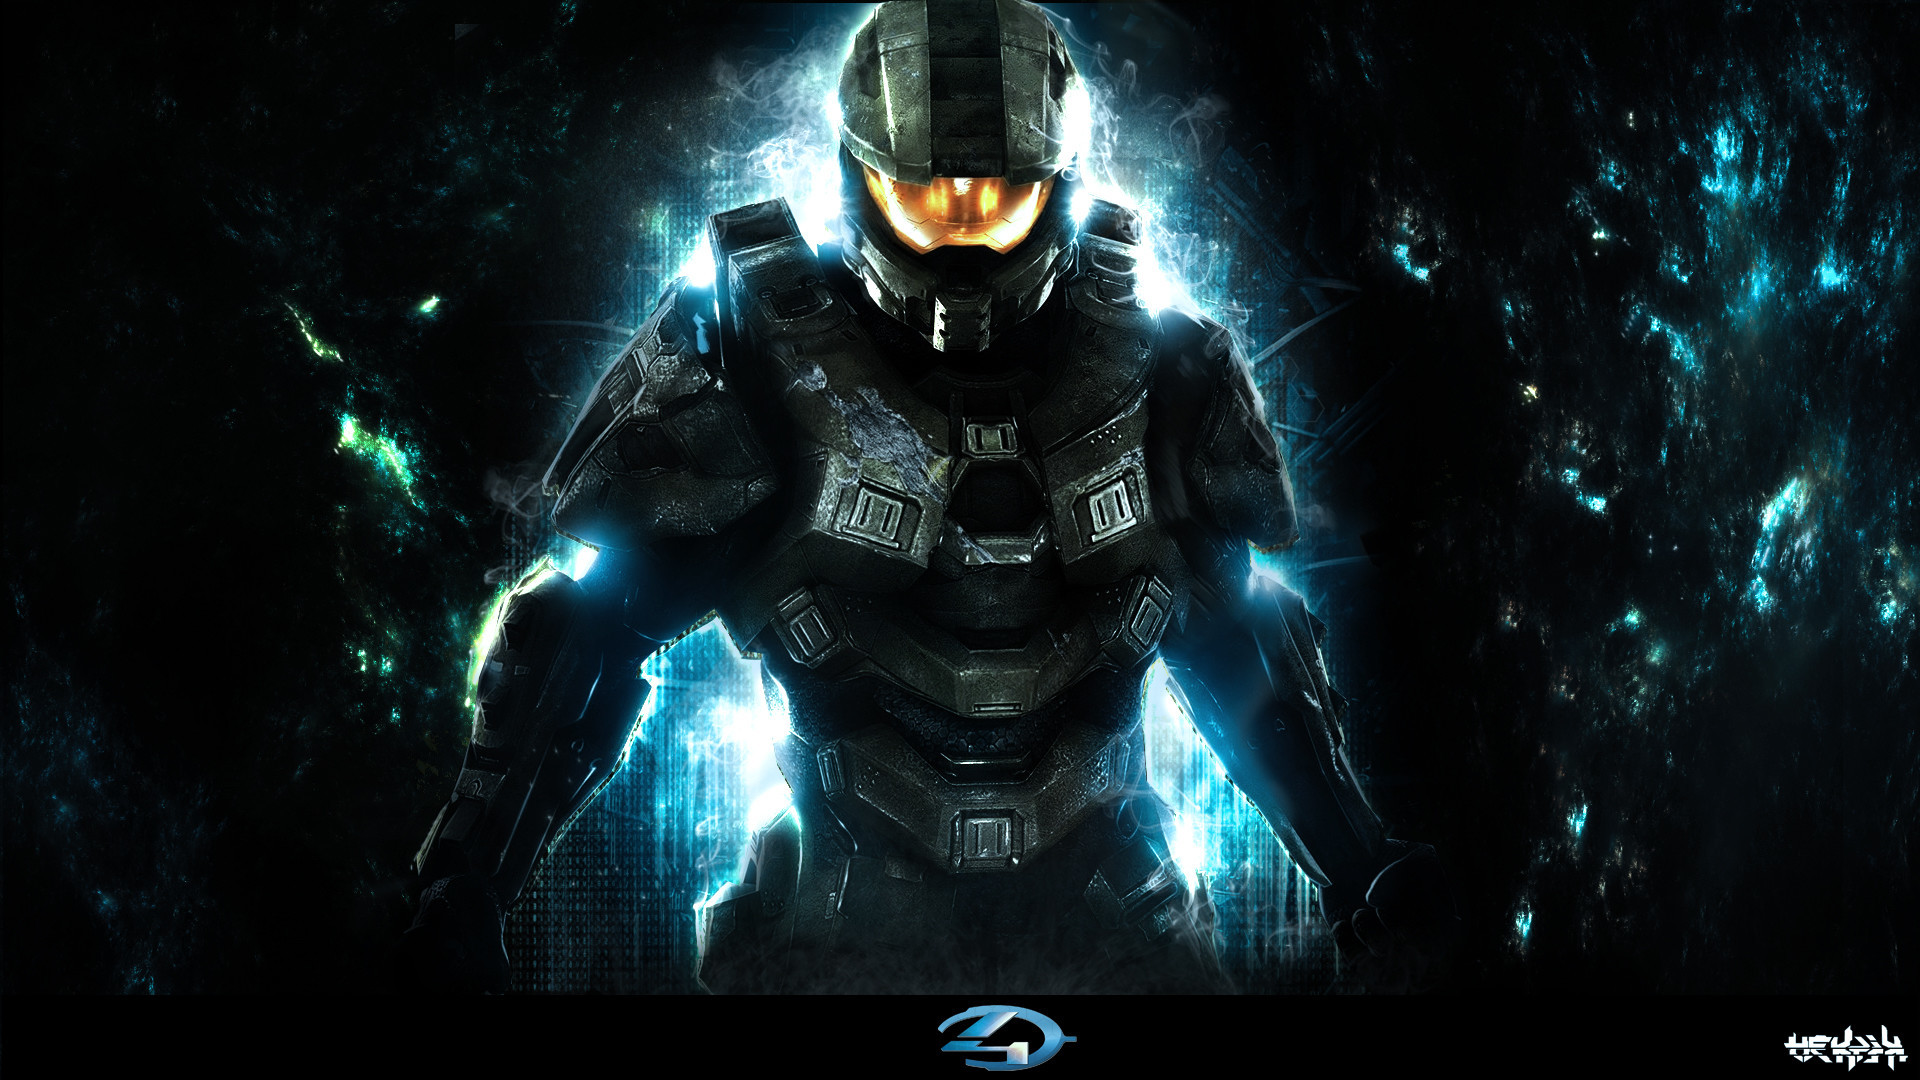 1920x1080  Halo 4 HD Wallpapers 25 - 1920 X 1080